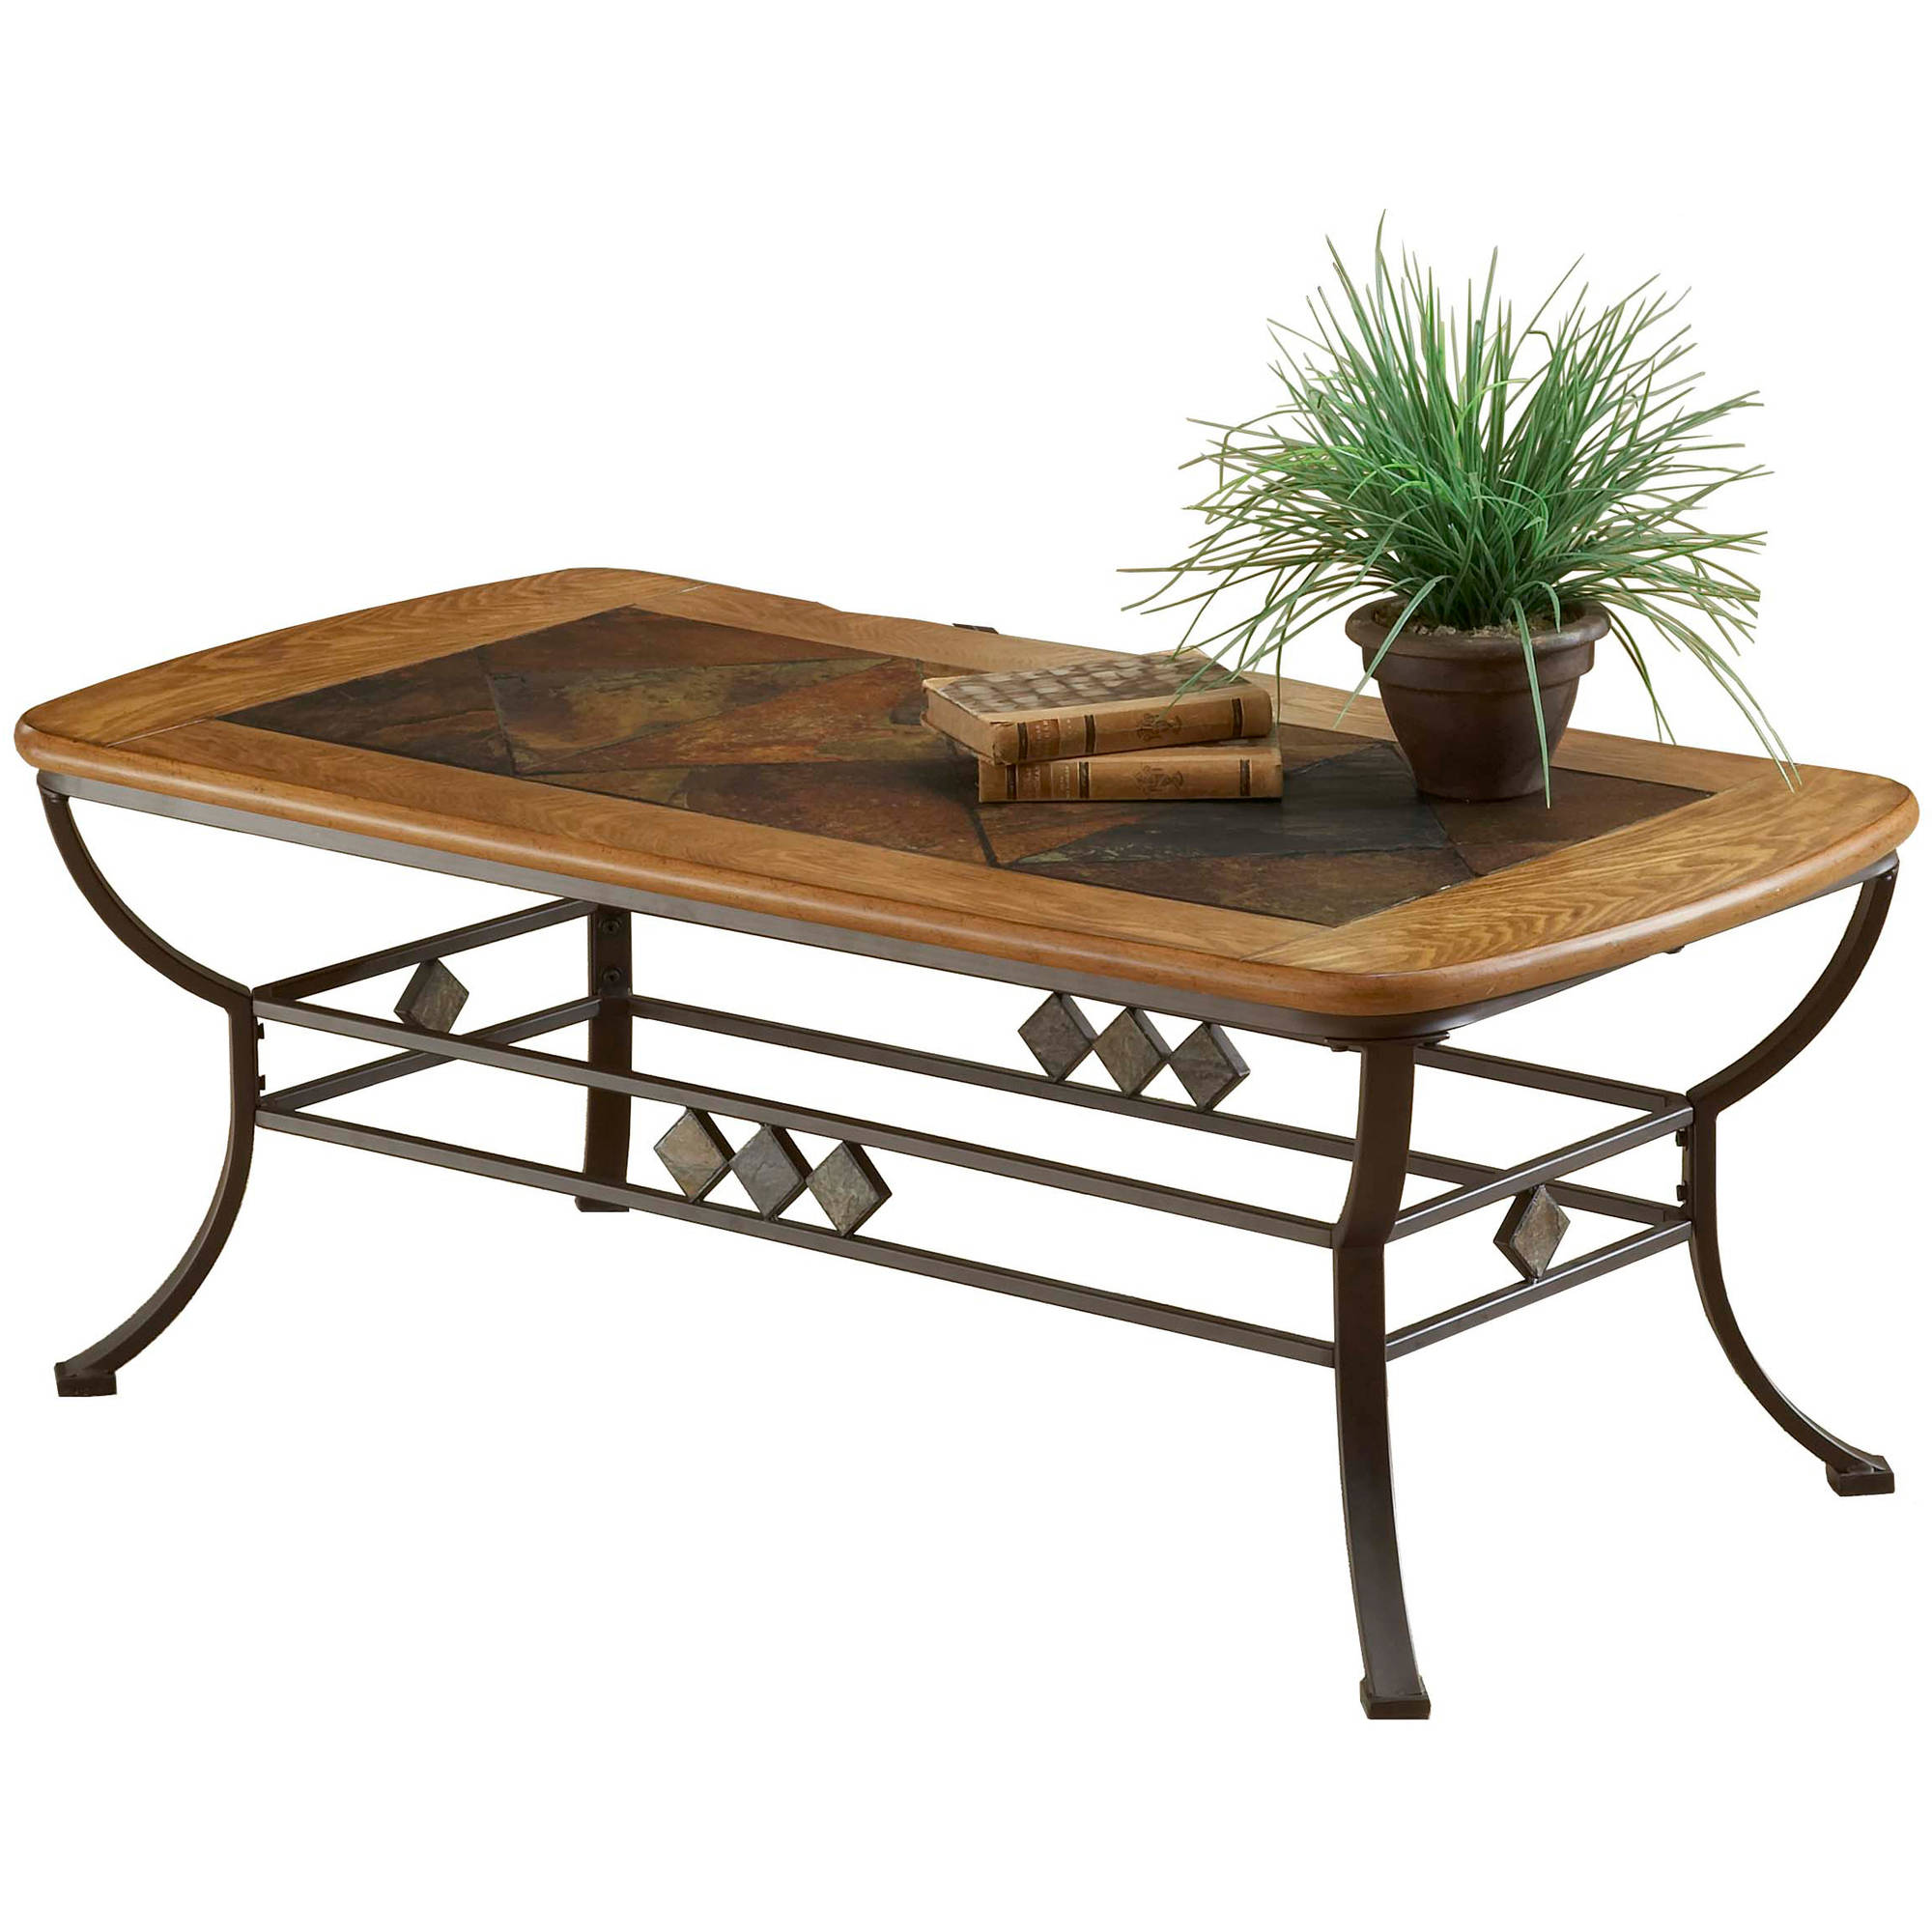 Hillsdale Furniture Lakeview Cocktail Table by Hillsdale